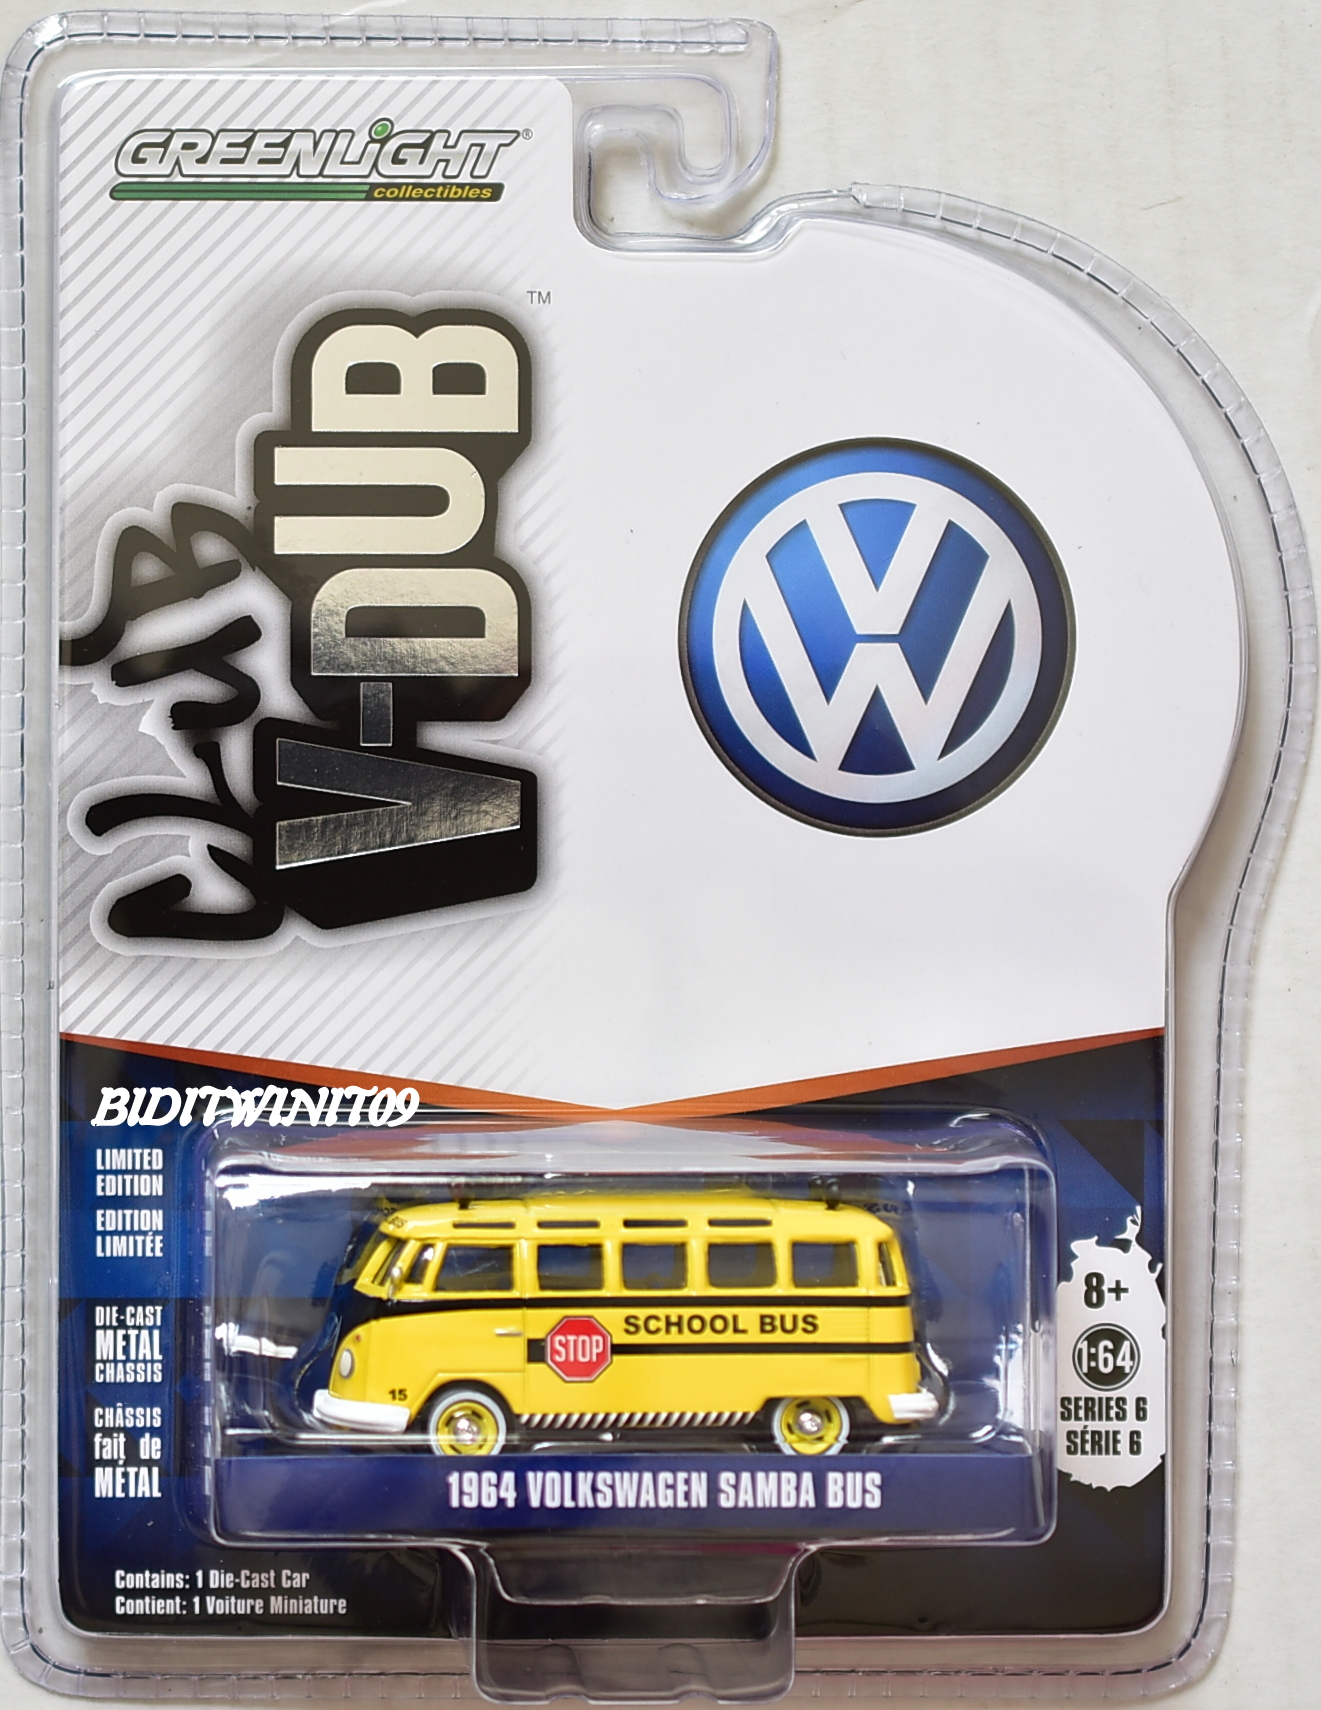 GREENLIGHT CLUB V-DUB SERIES 6 1:64 SCALE 1964 VOLKSWAGEN SAMBA BUS YELLOW